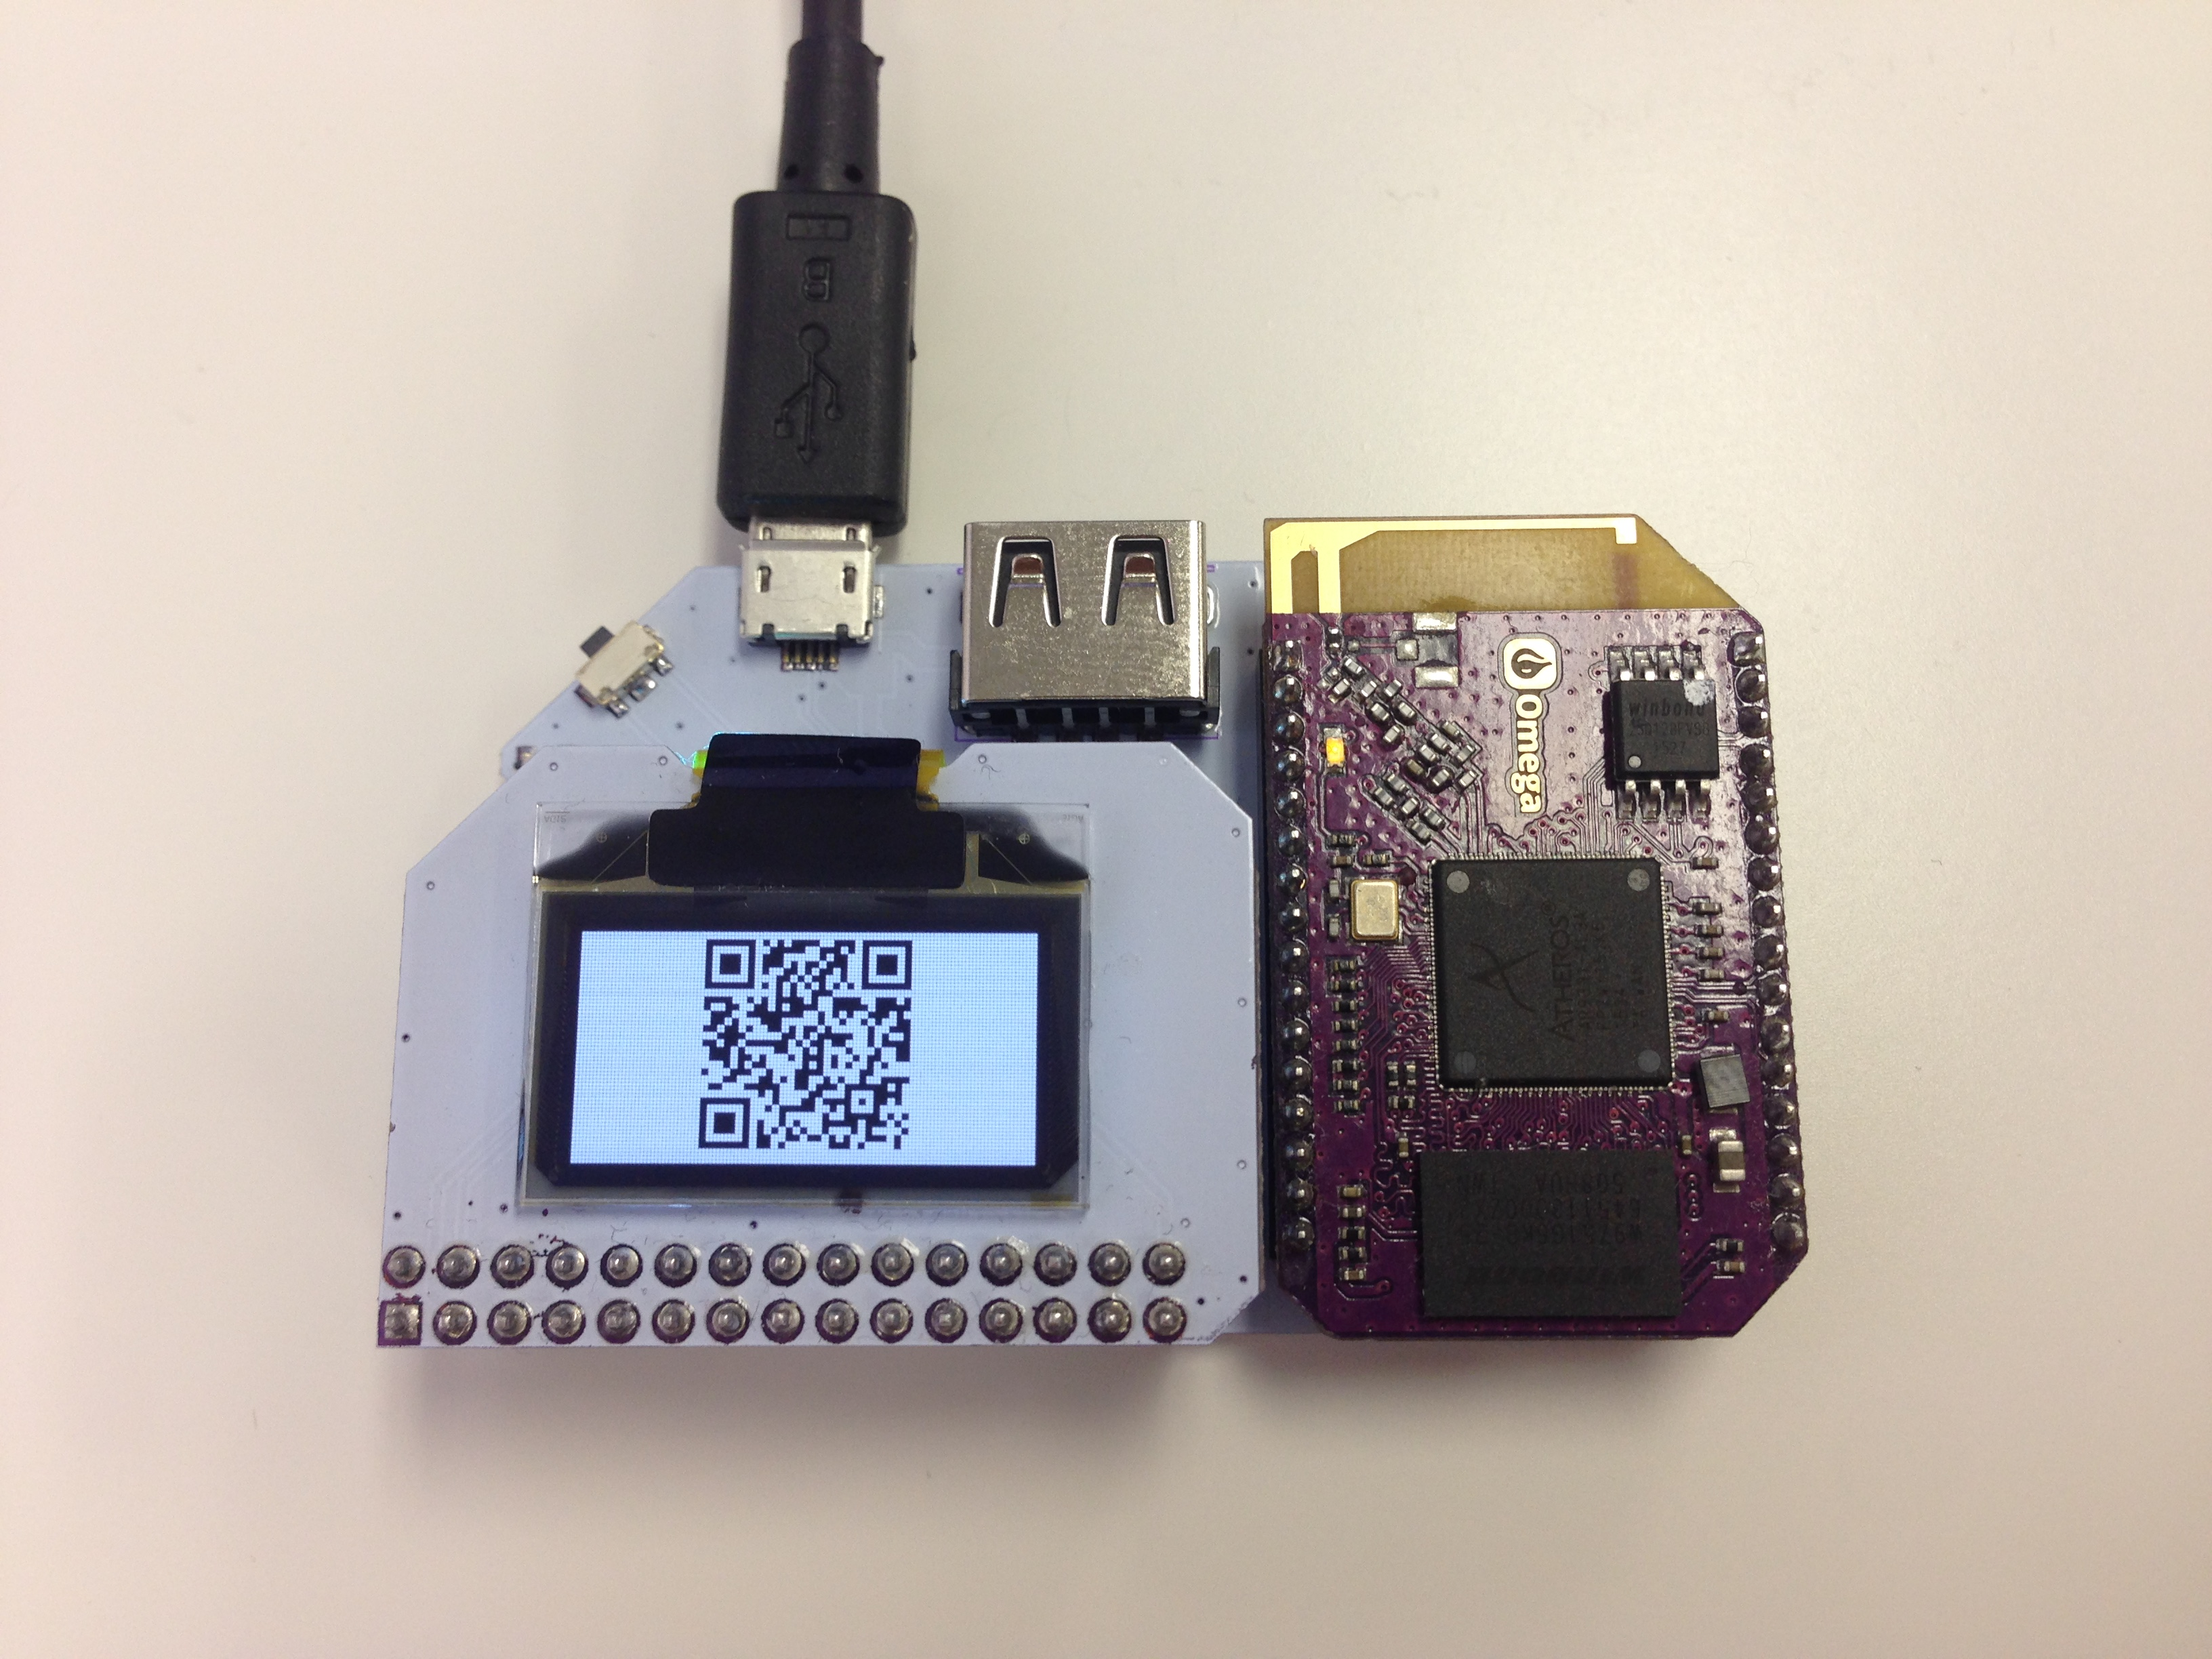 wiki/OLED-QR-Code-Generator md at master · OnionIoT/wiki · GitHub